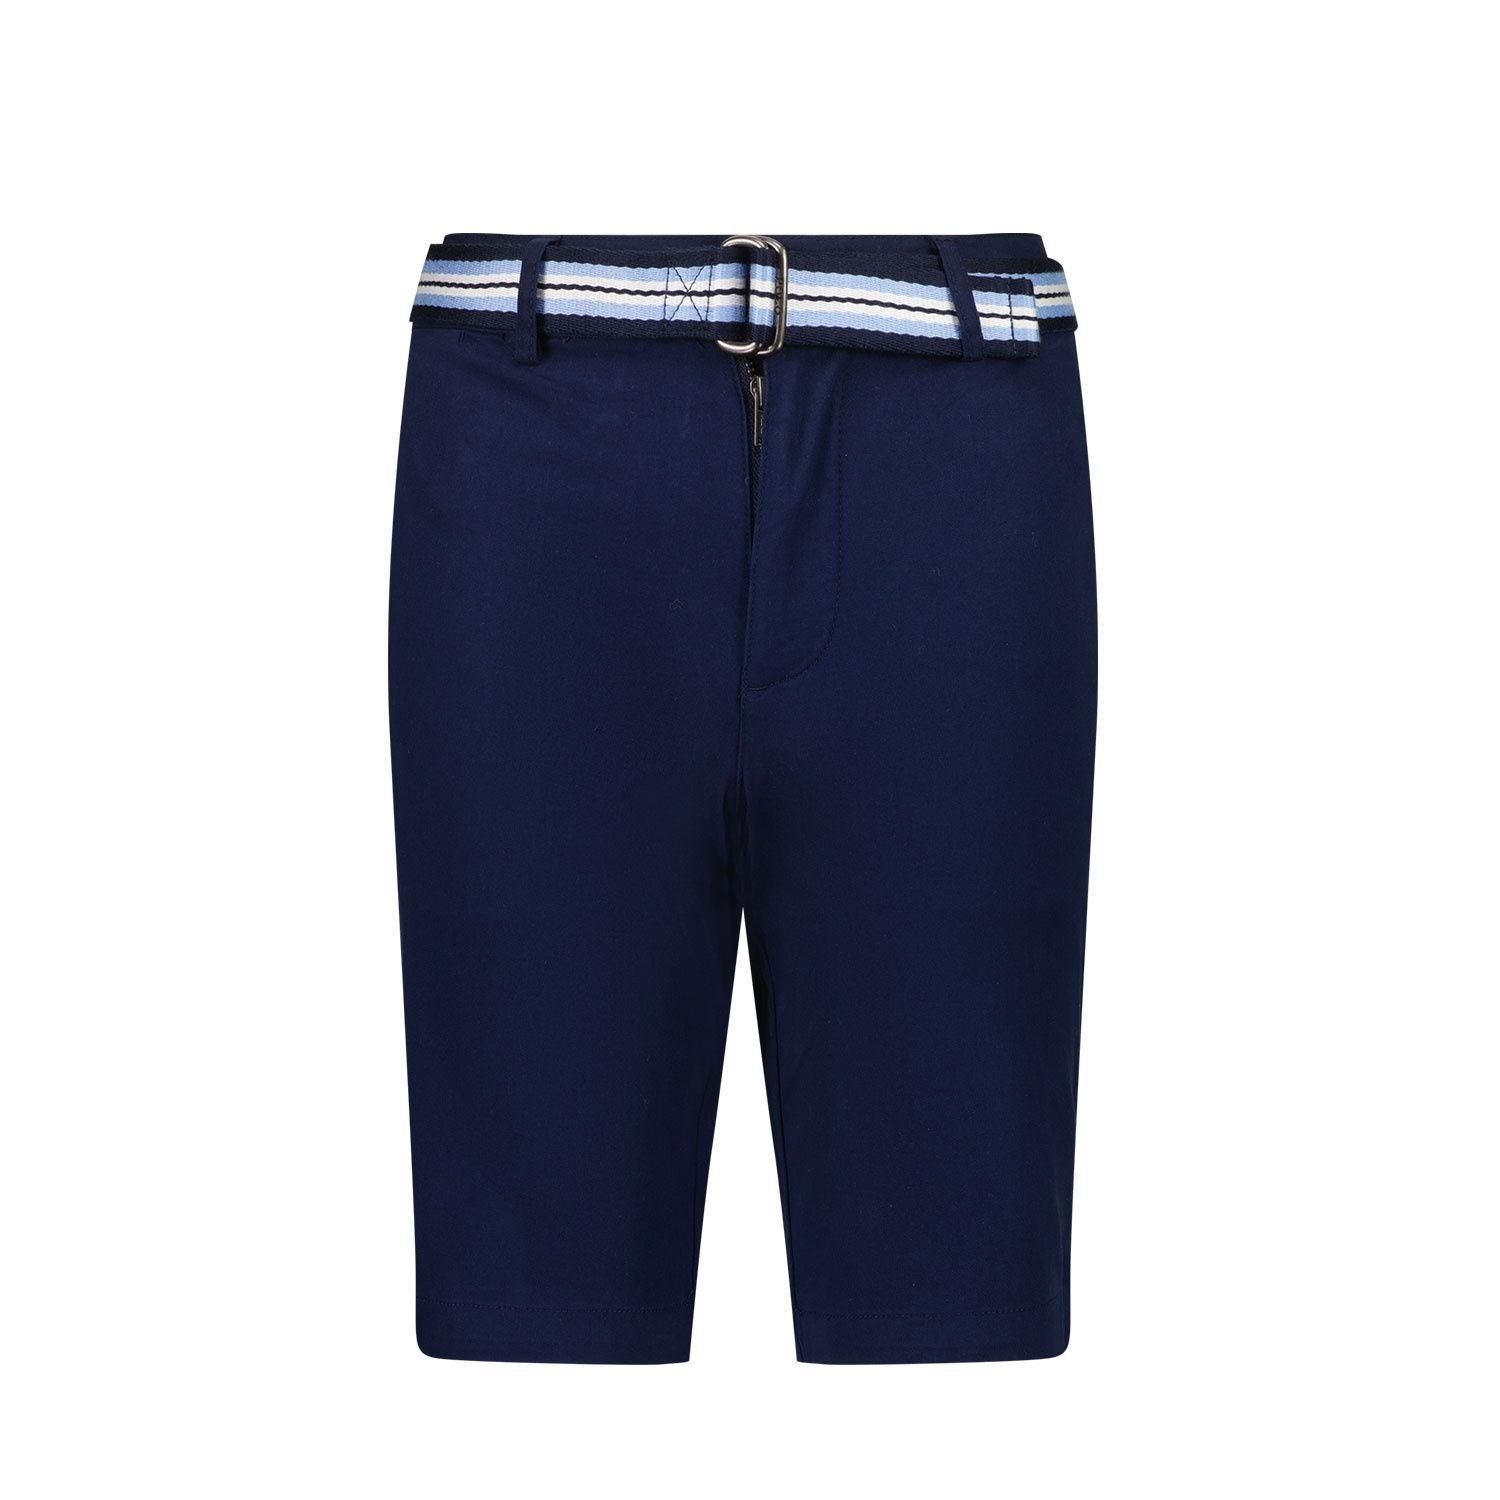 Picture of Ralph Lauren 832061 kids shorts navy